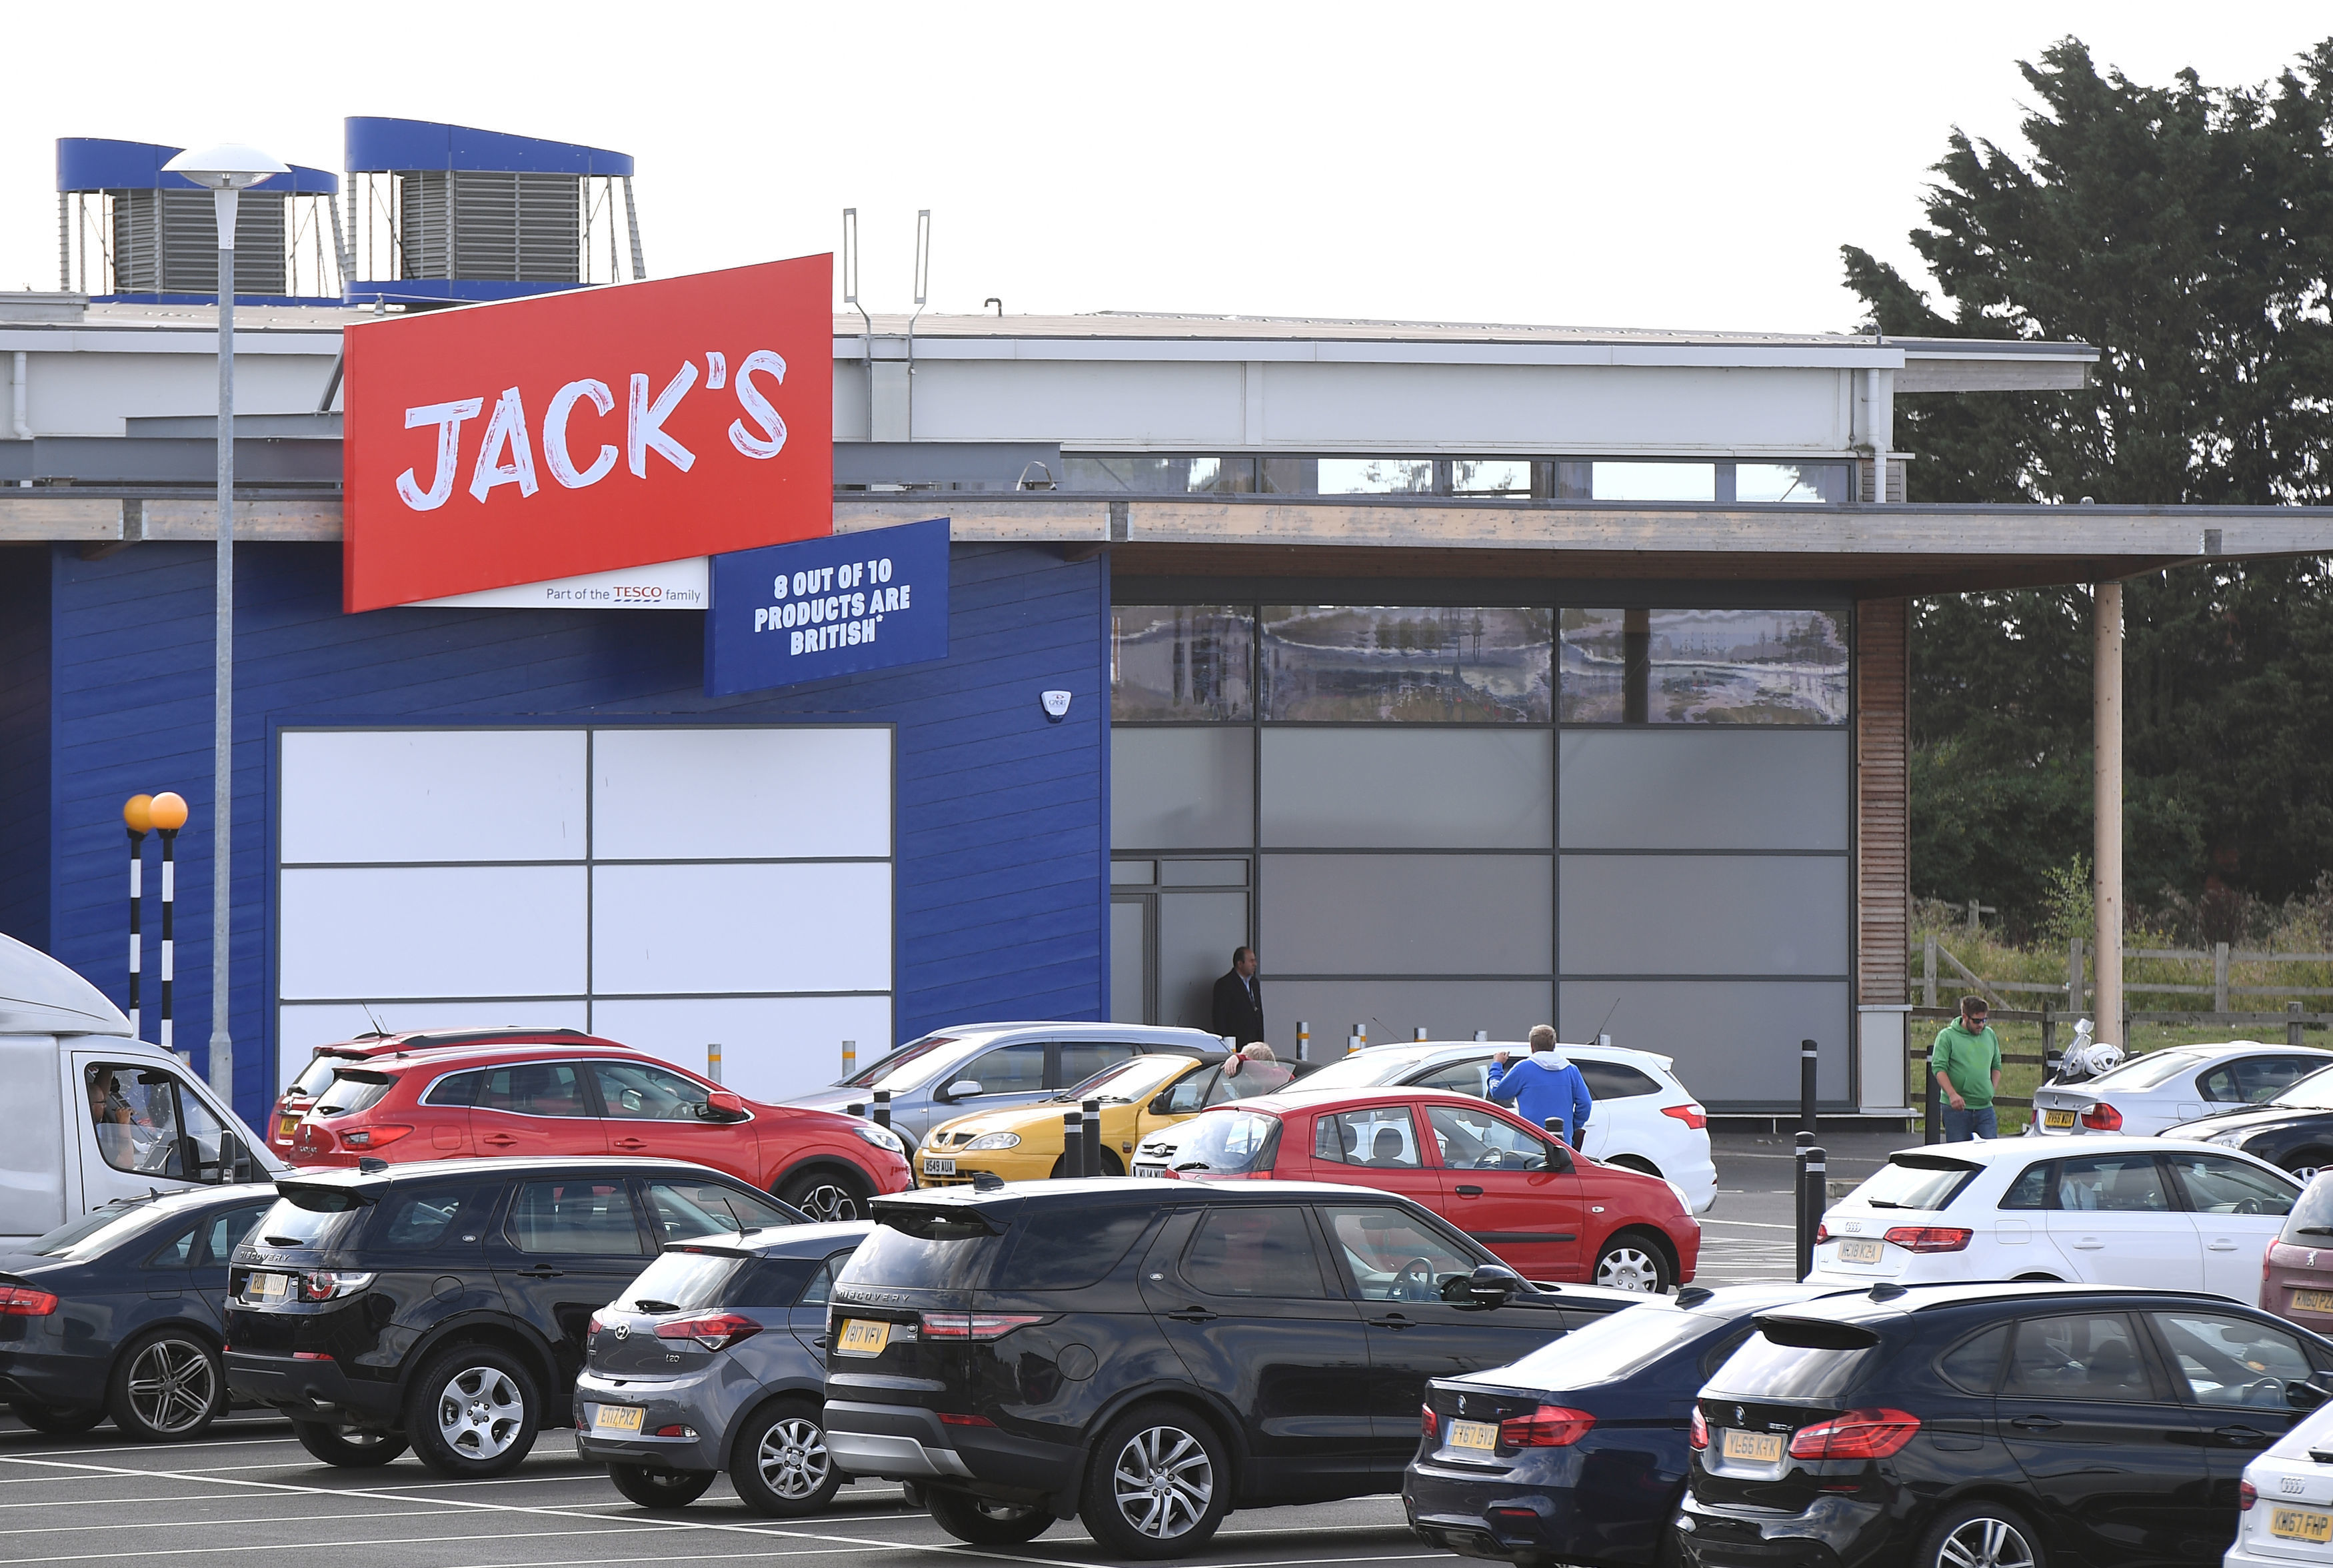 Tesco unveils Jack's to compete with Lidl and Aldi